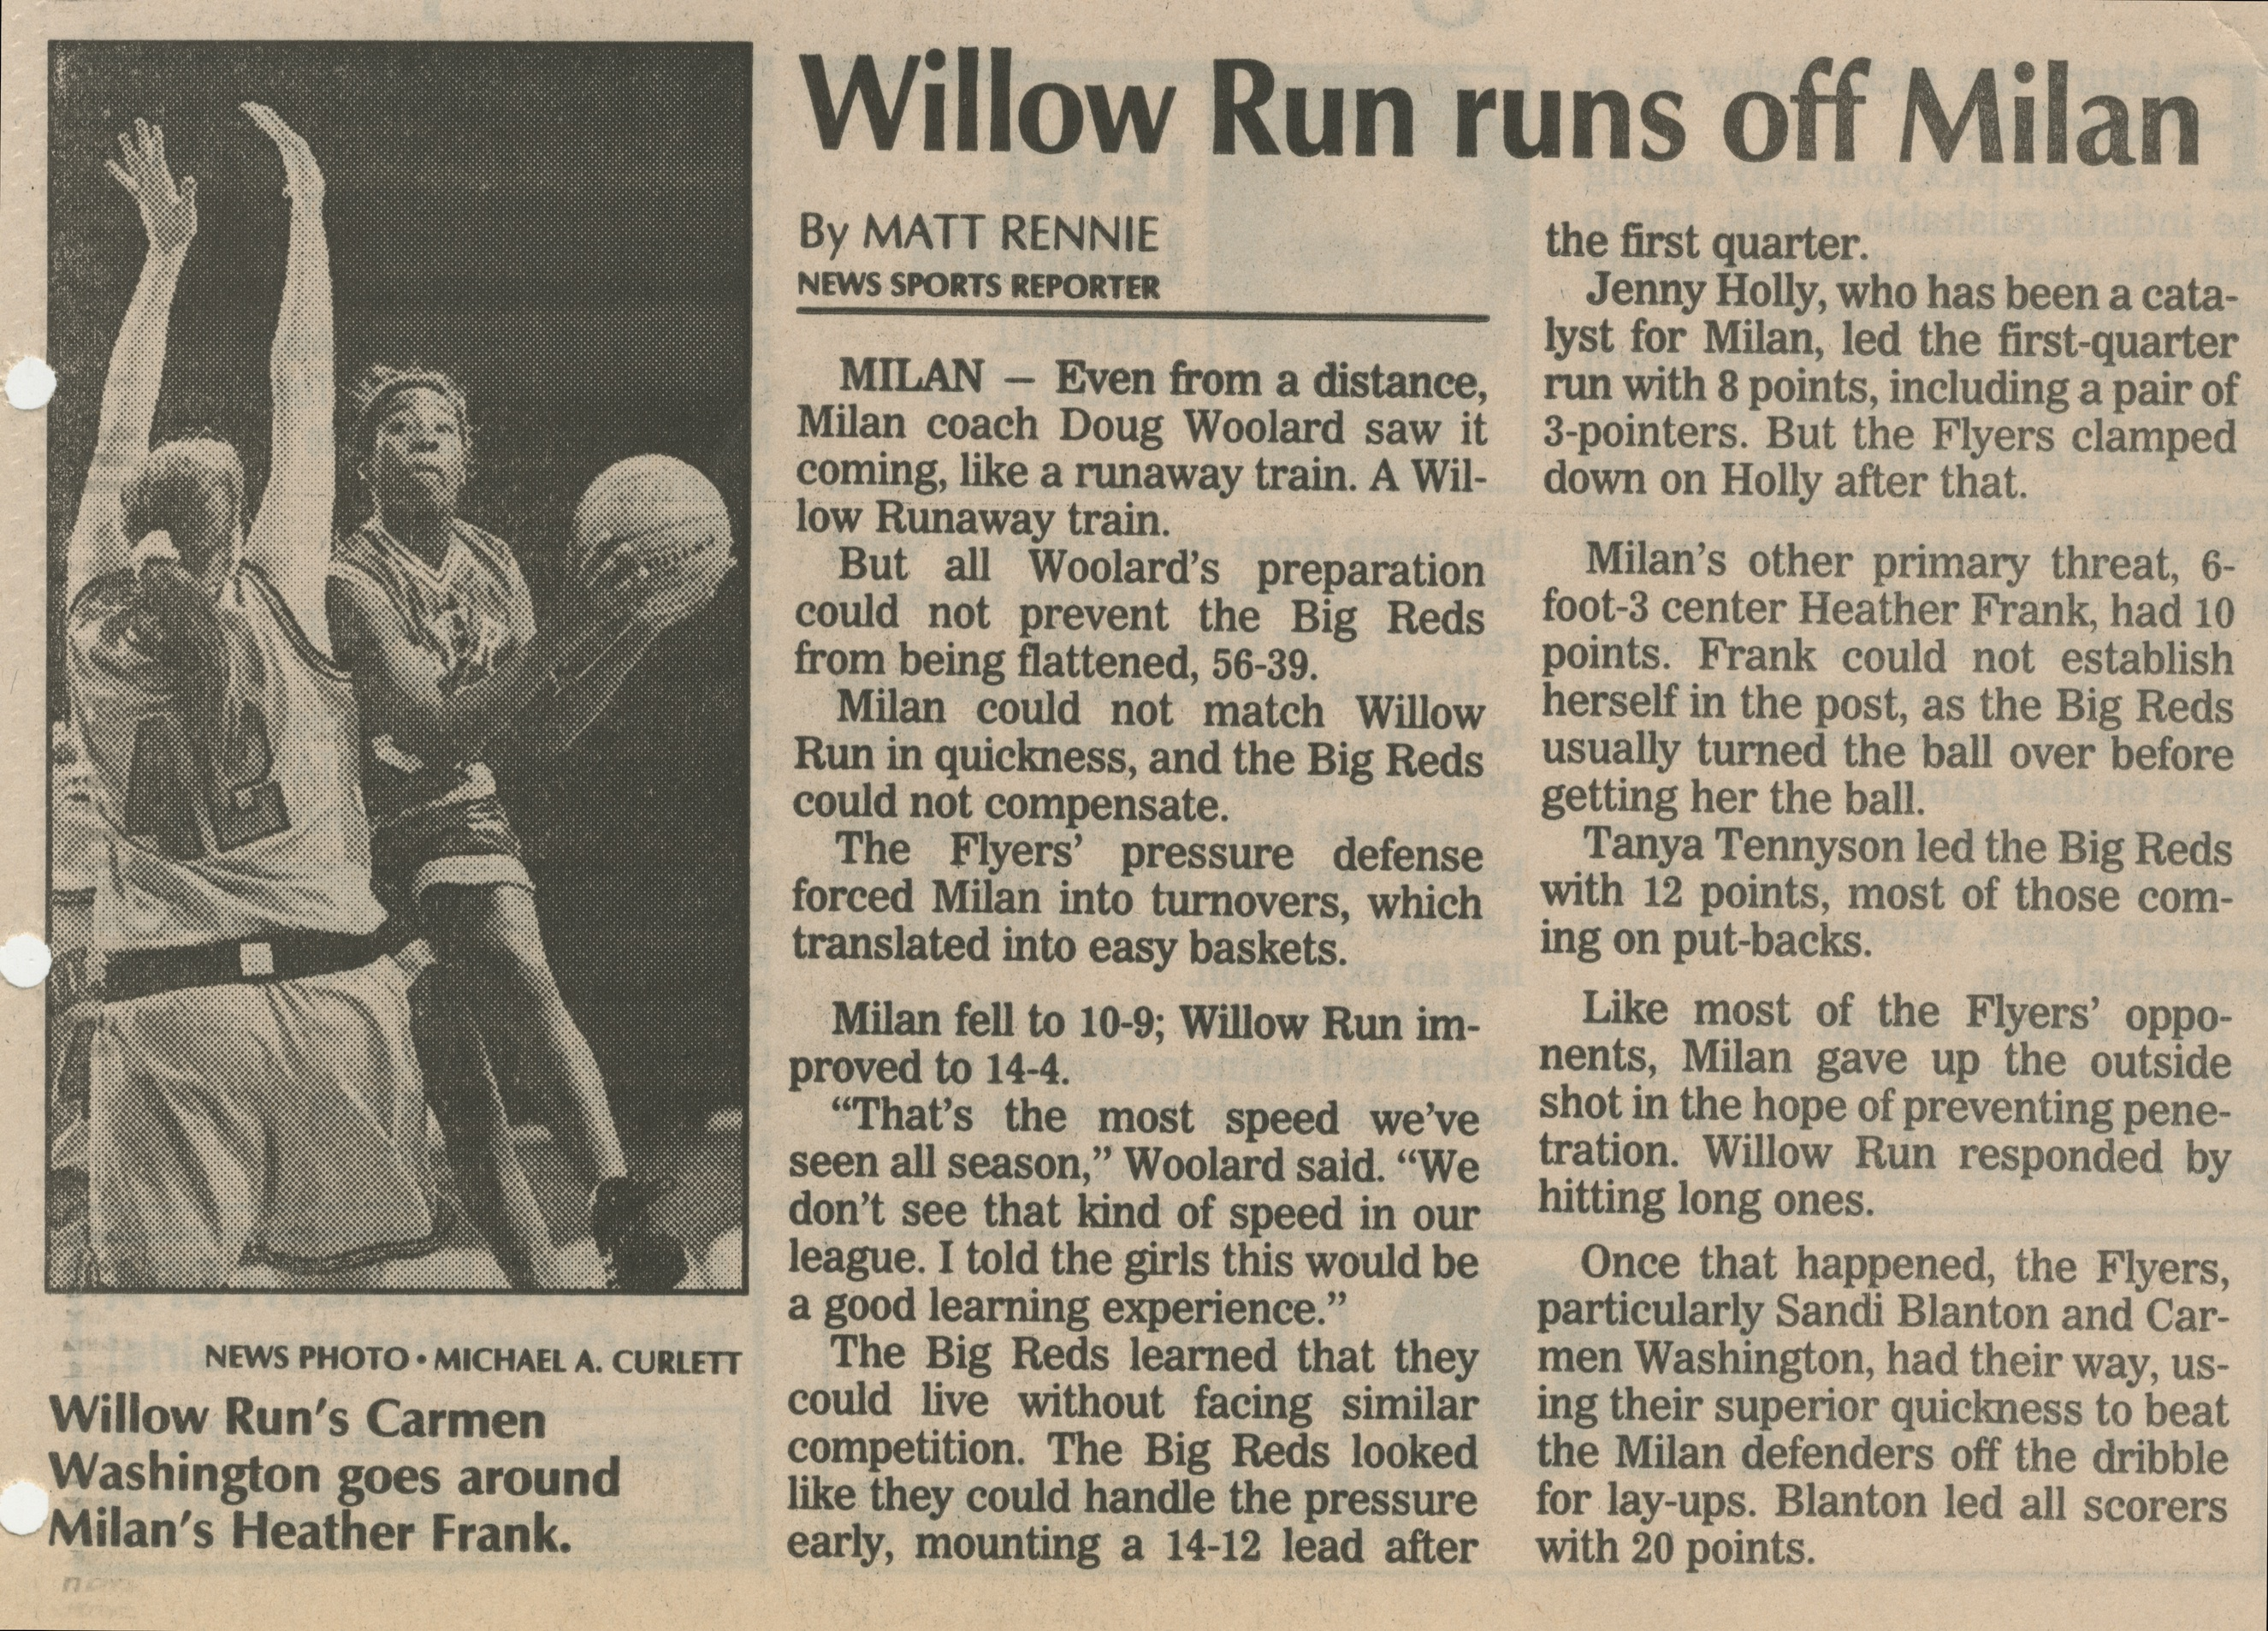 Willow Run Runs Off Milan image